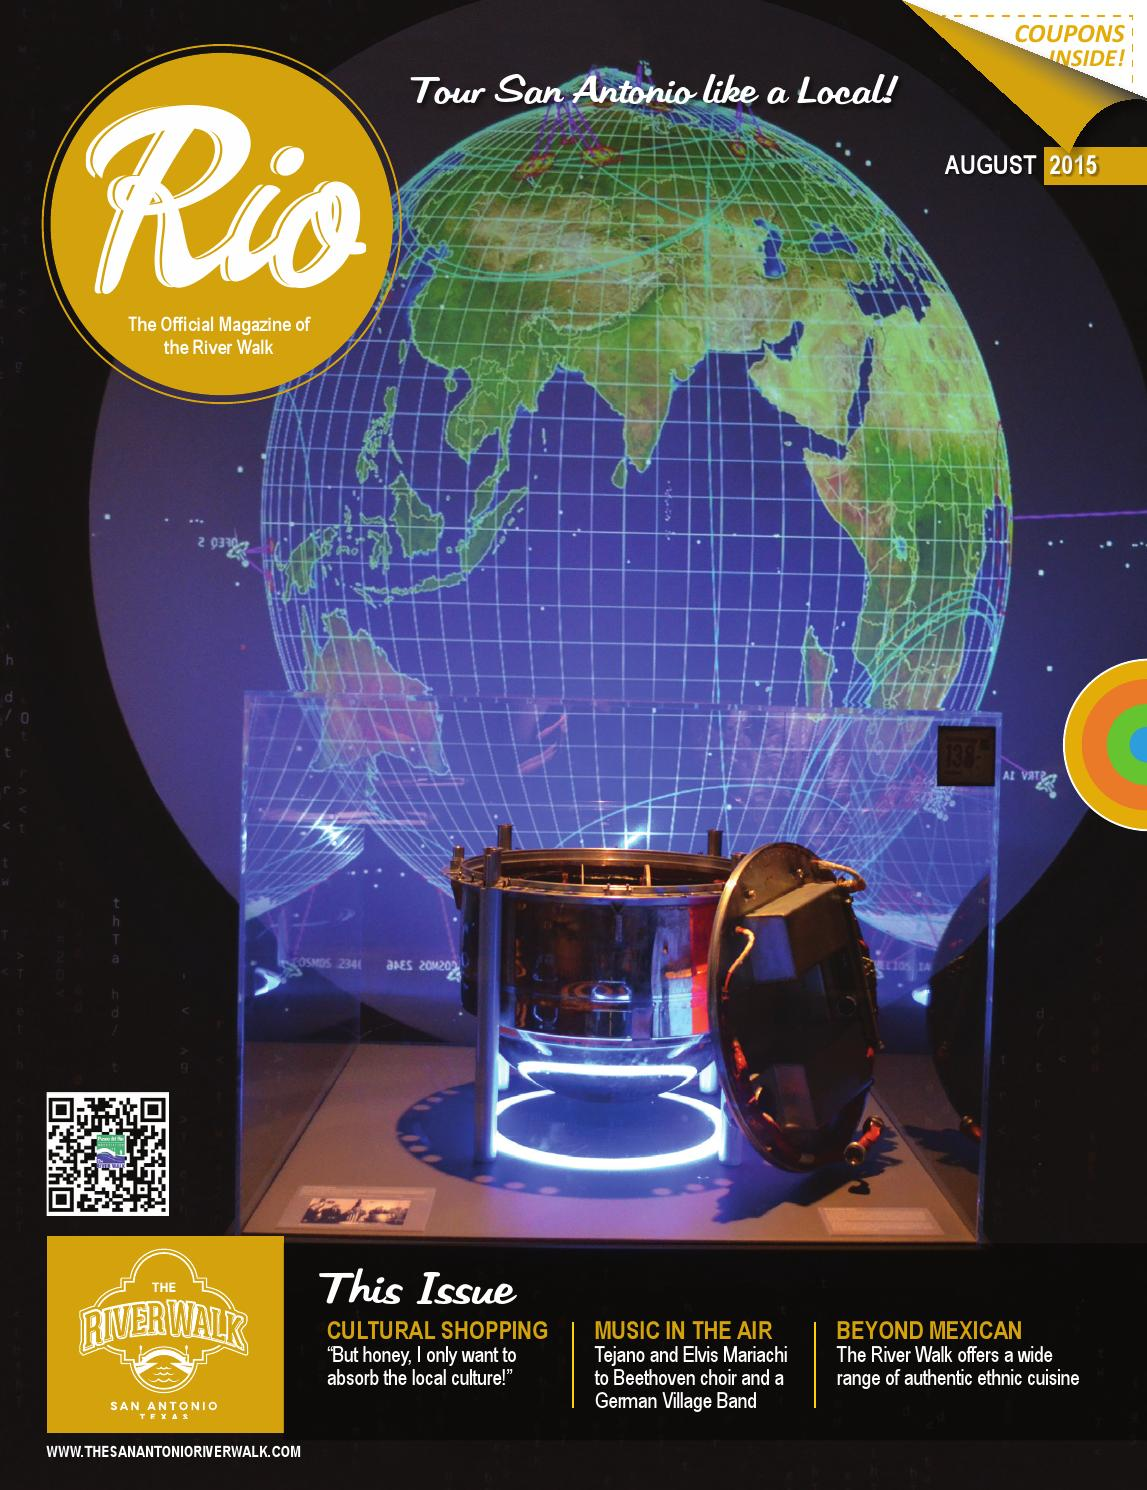 rio magazine august 2015 by traveling blender - issuu